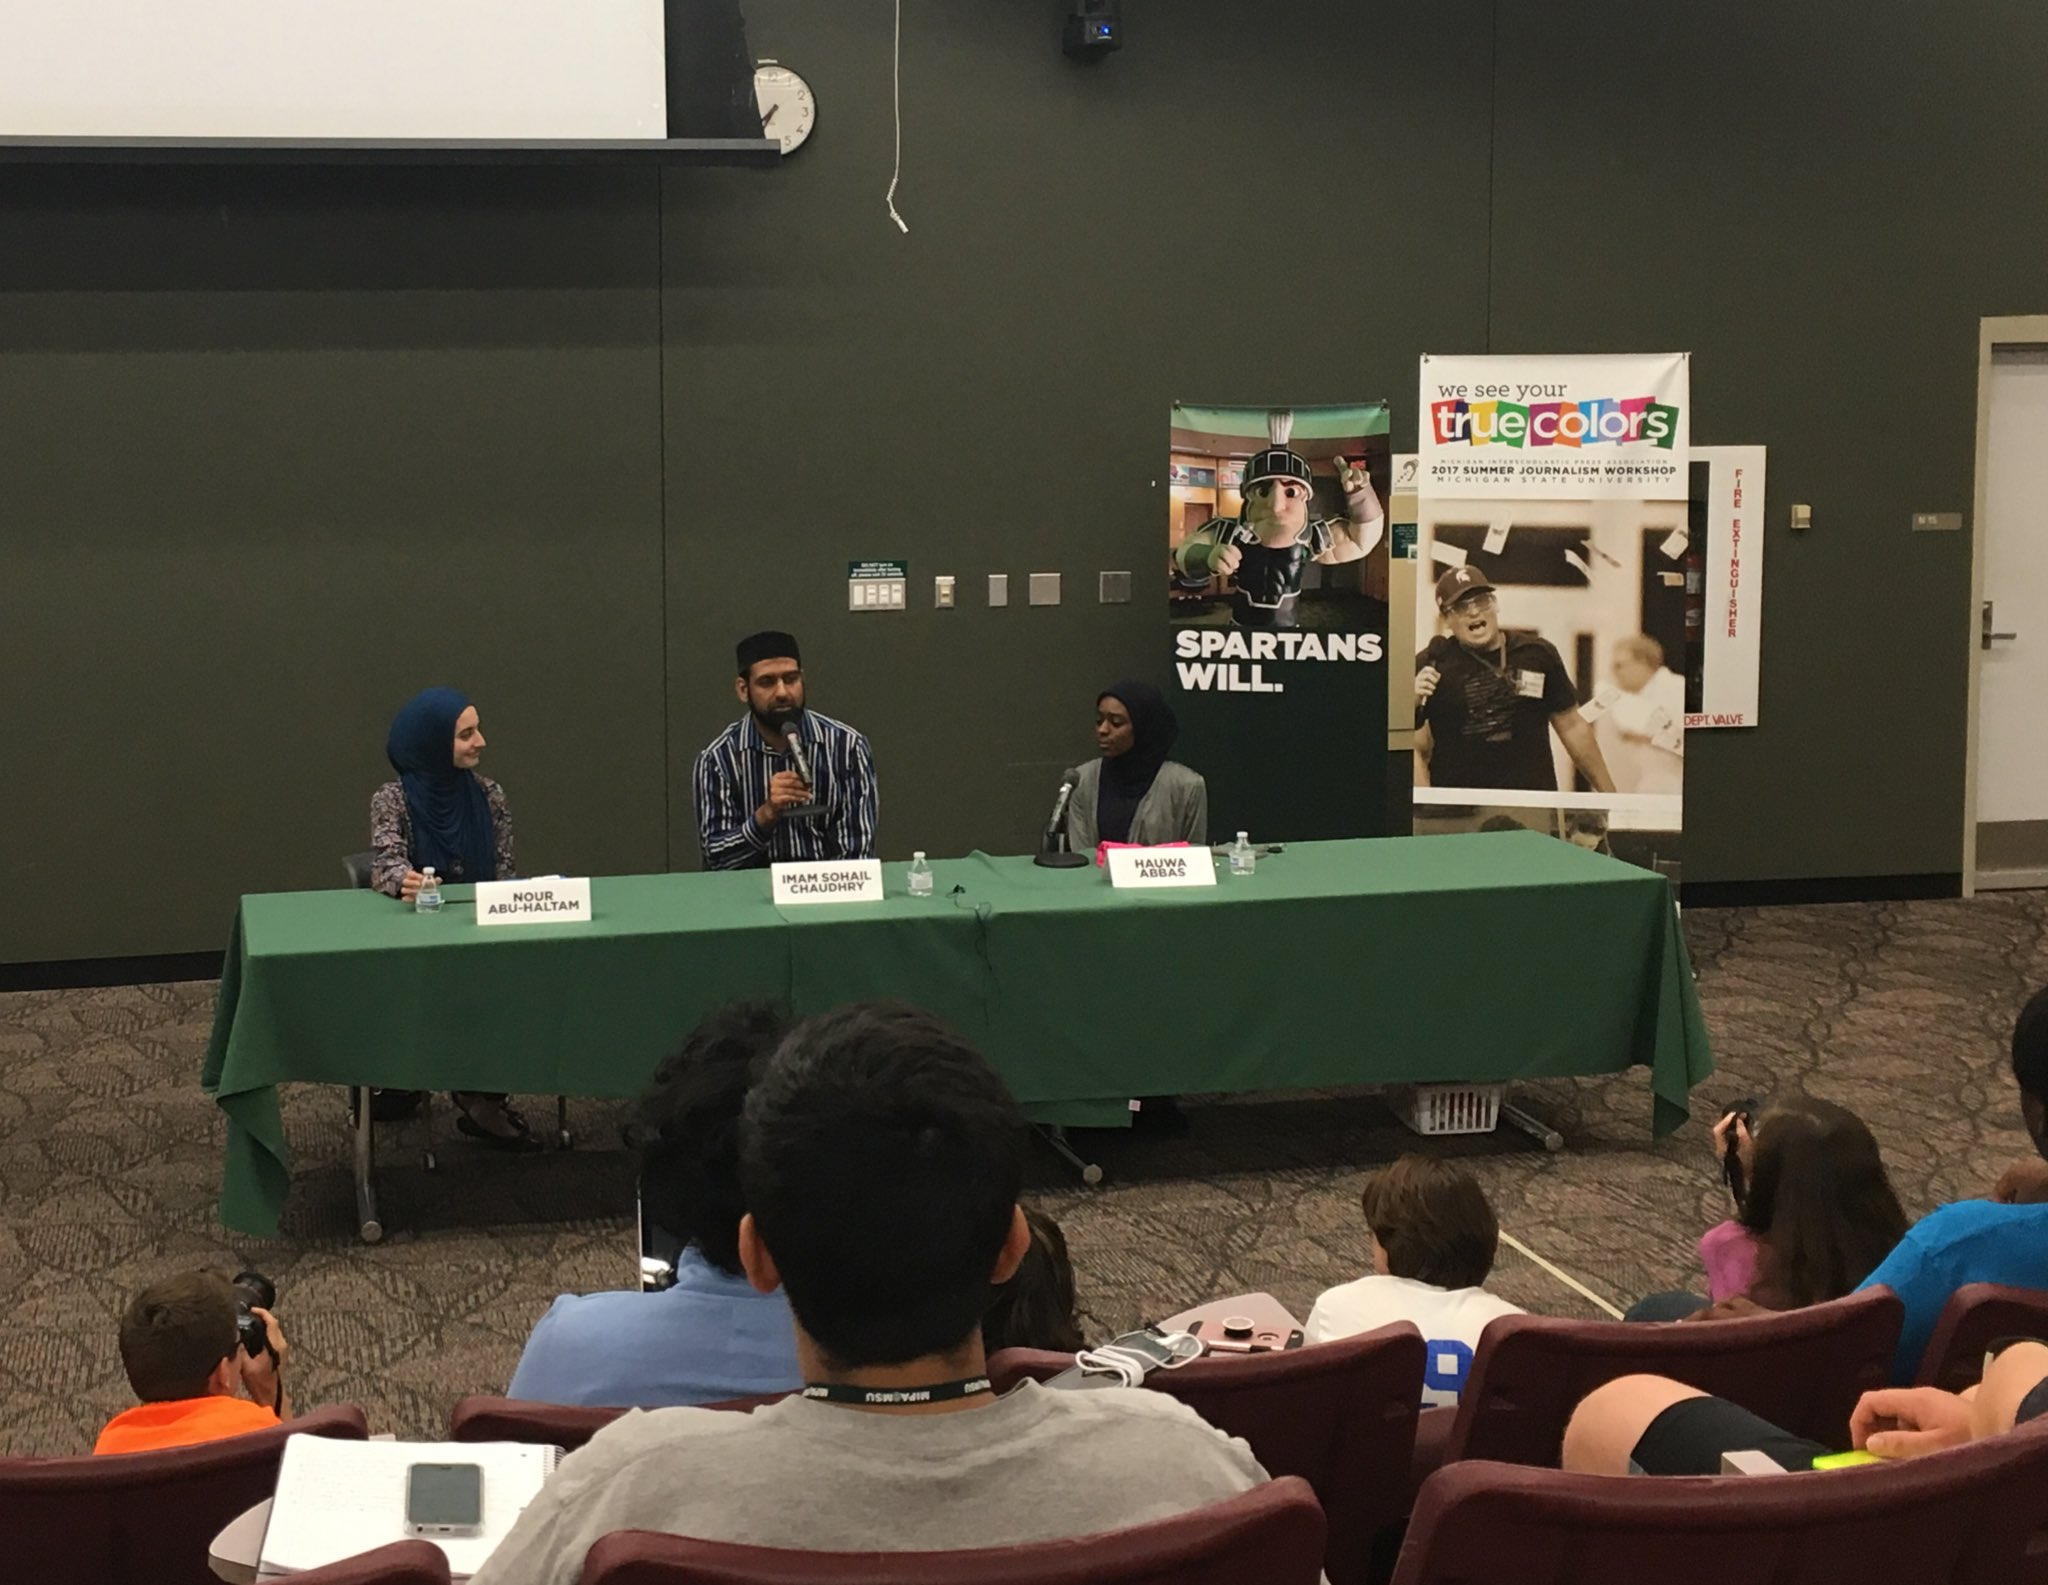 Nour Abu-Haltam, Imam Sohail Chaudhry, and Hauwa Abbas speak about their Muslim culture to journalism students at #MIPA2017 #weboost https://t.co/mTqu37Y4V2